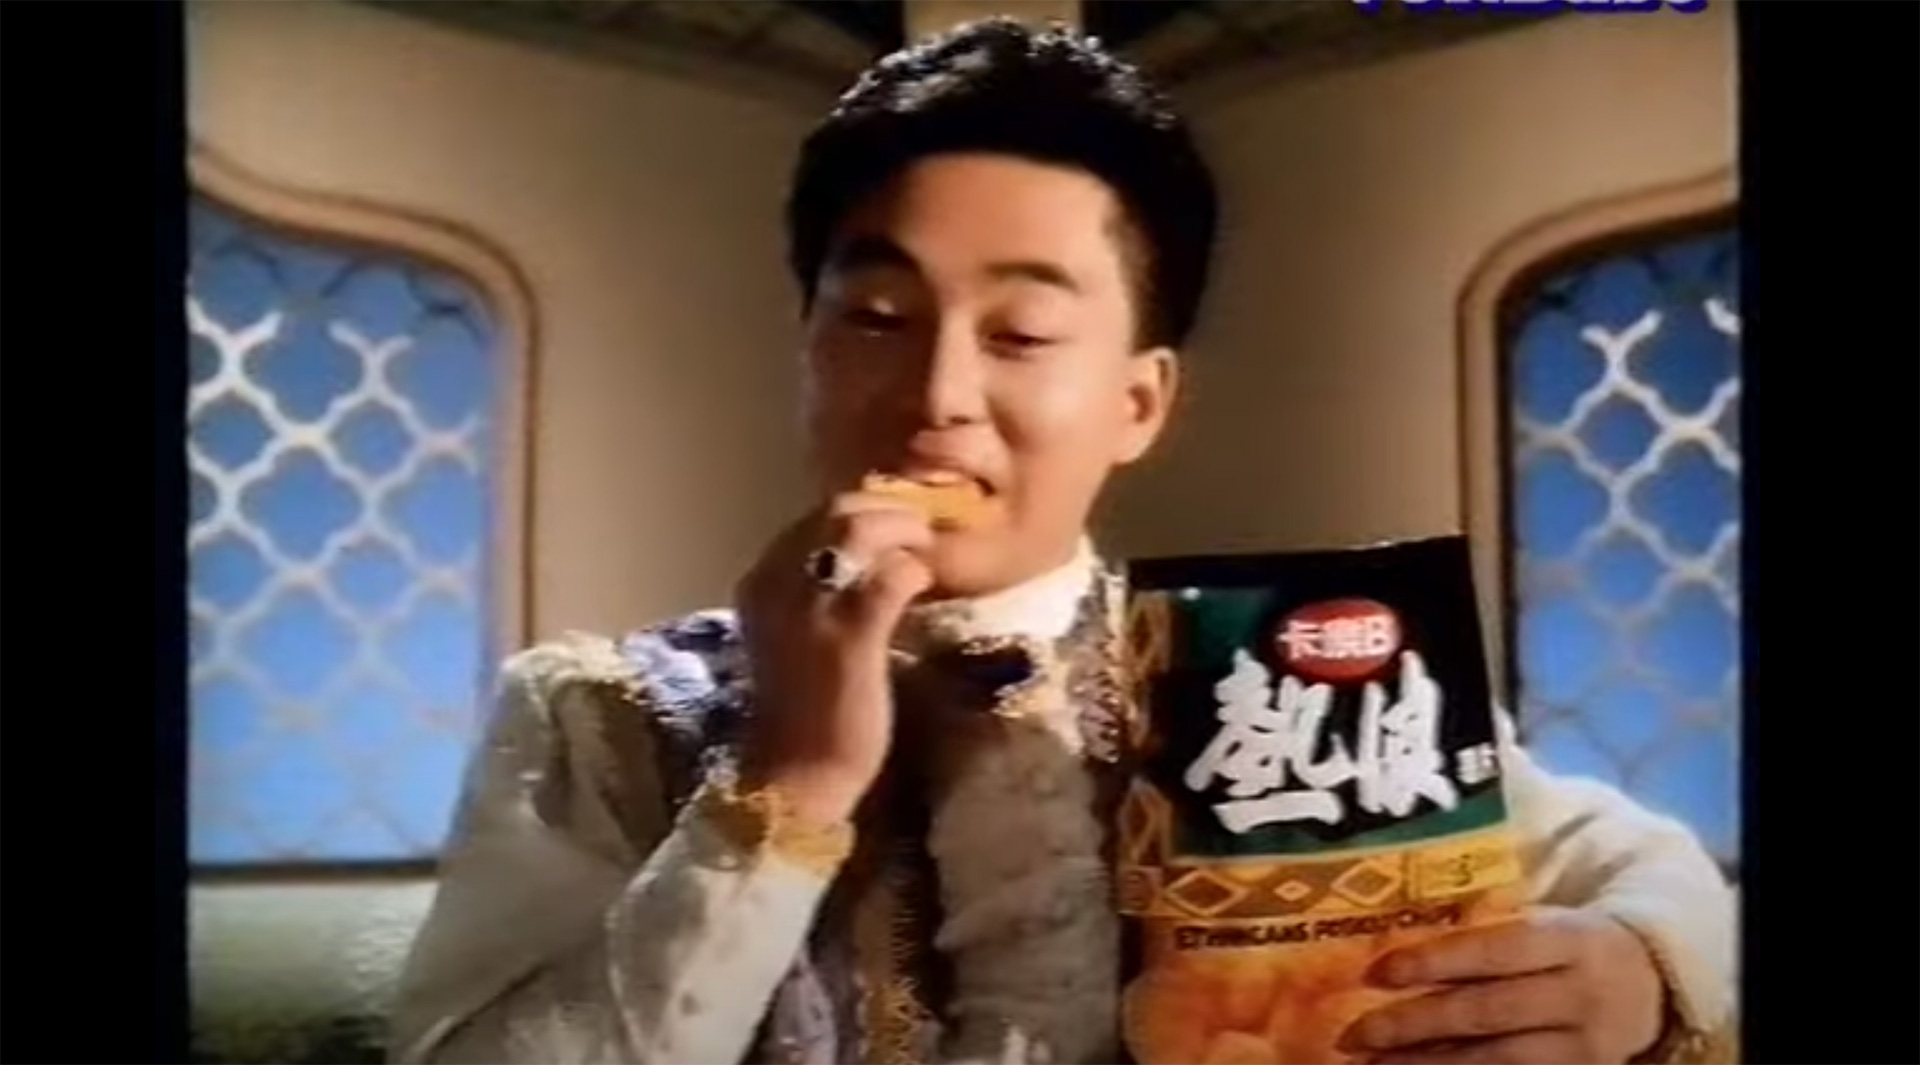 Calbee Hot & Spicy Flavoured Potato Chips